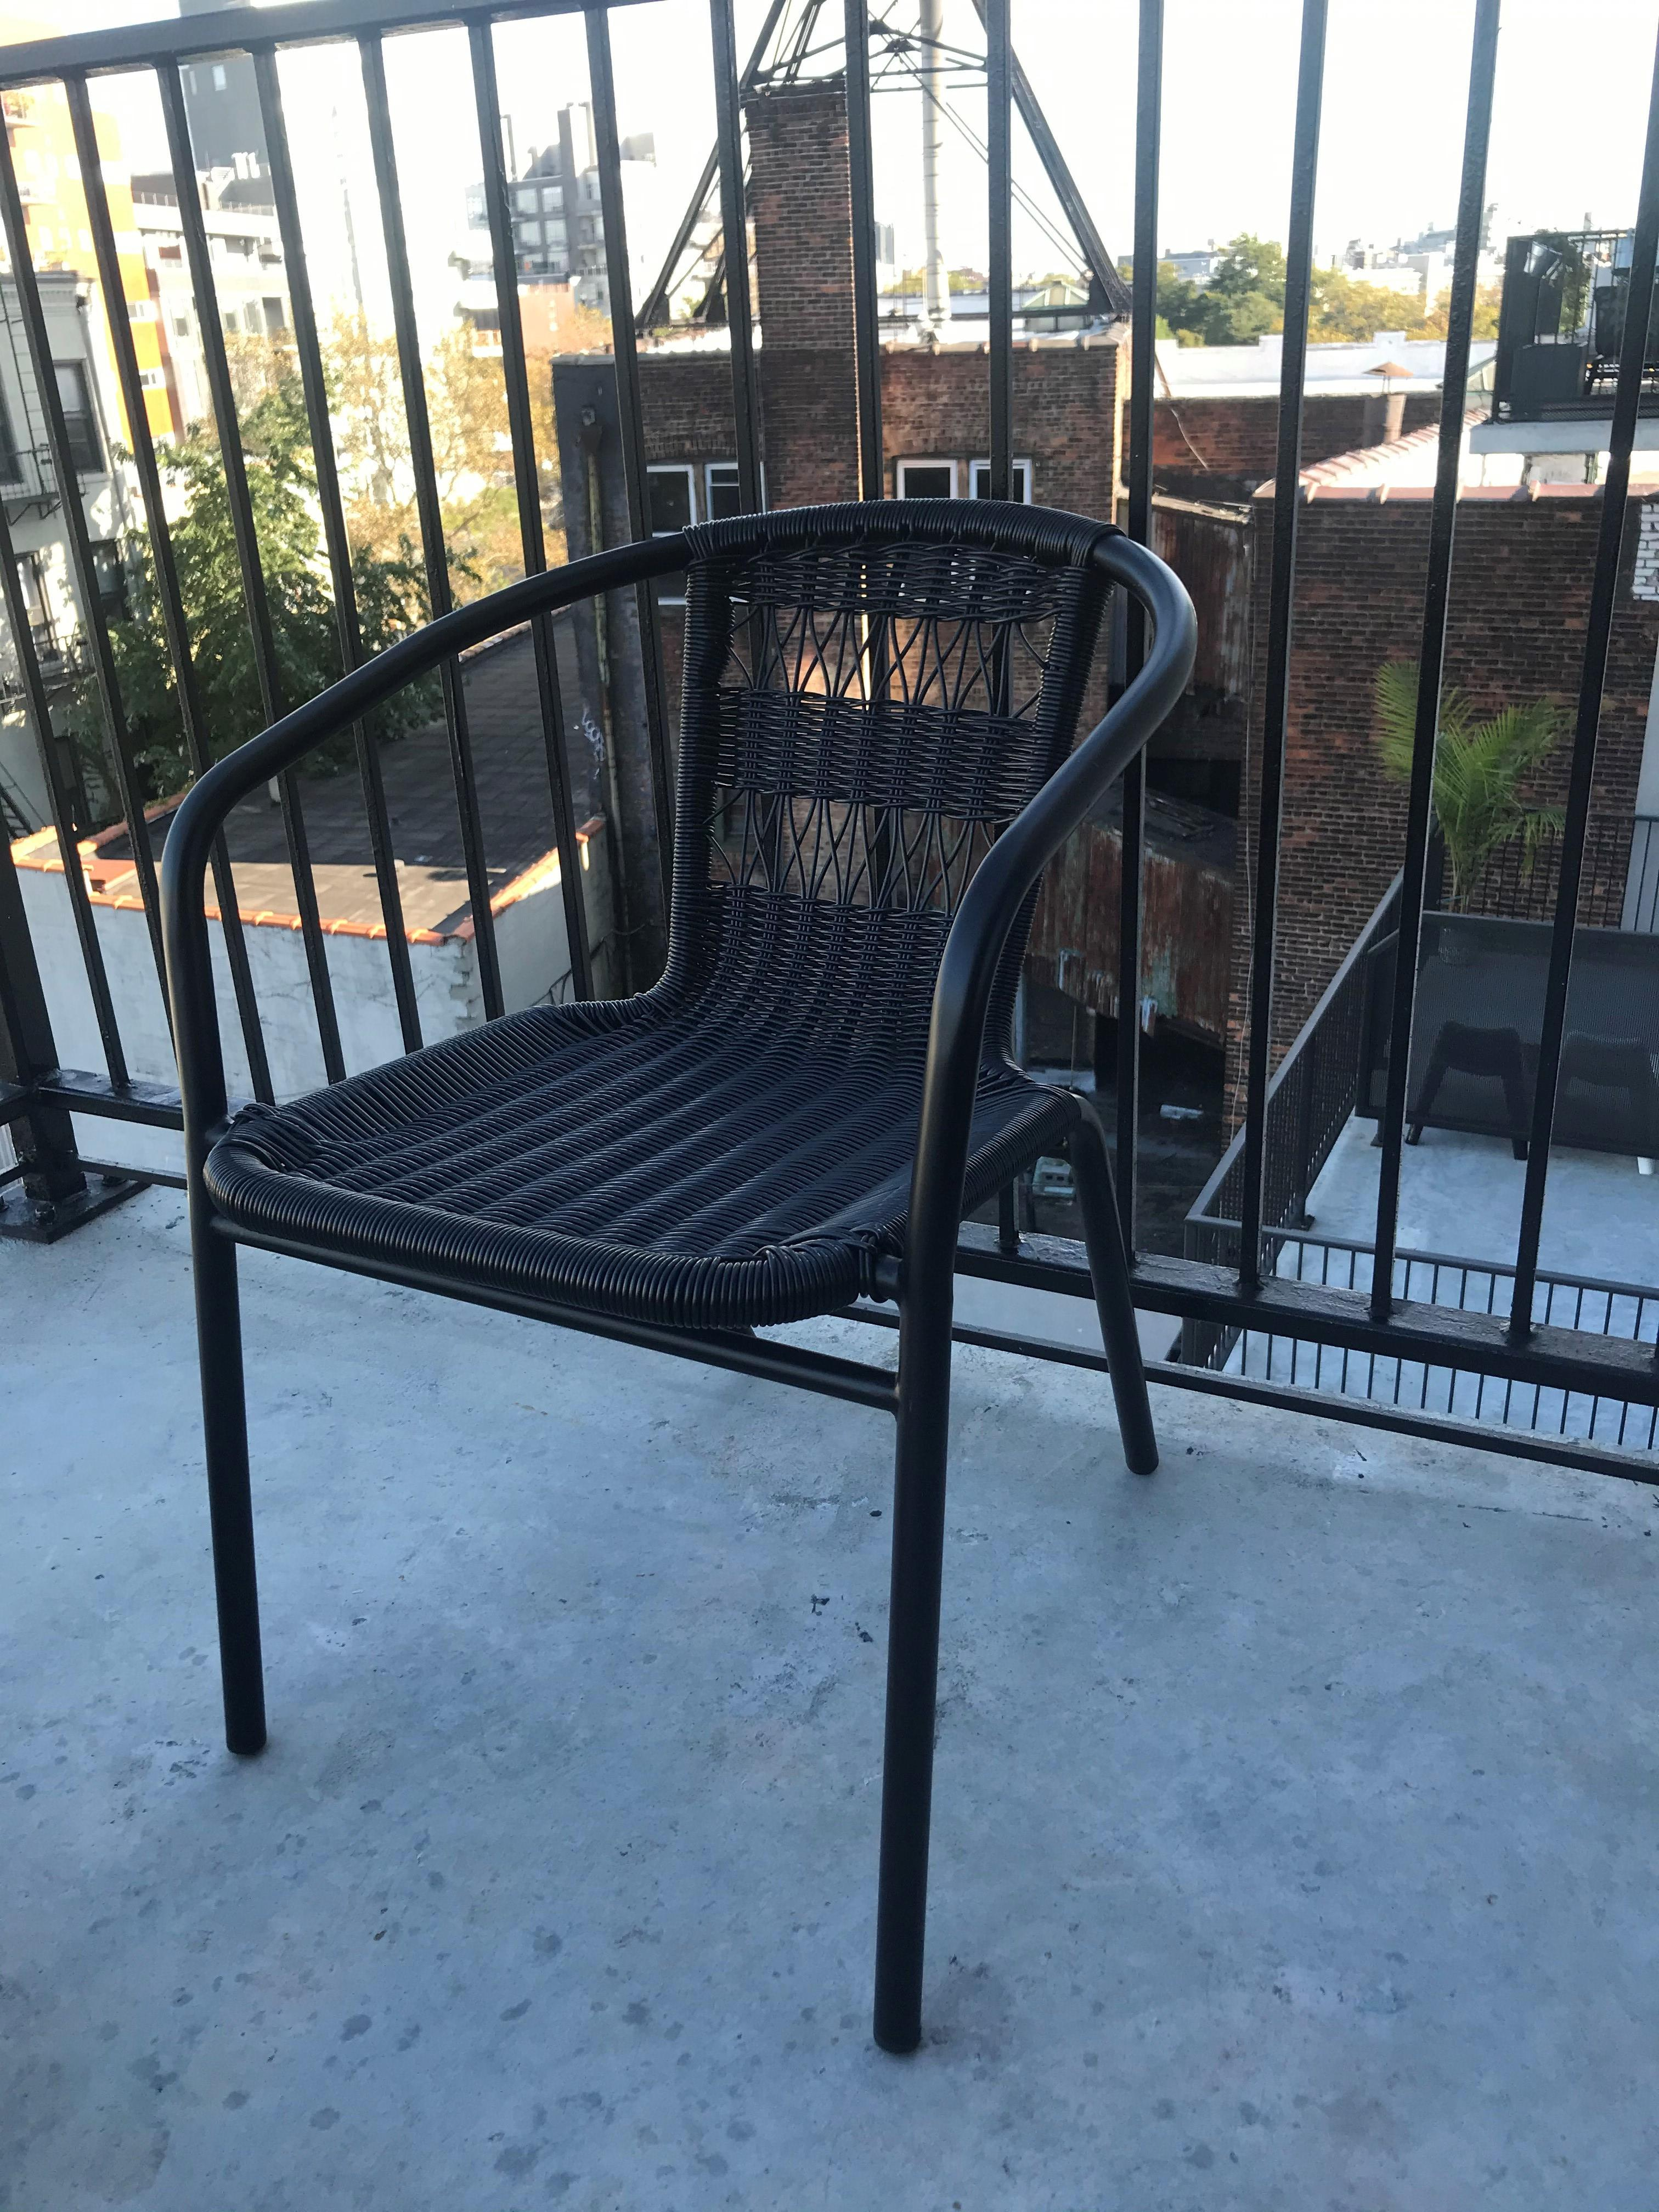 CB2 Rex Black Open Weave Chair